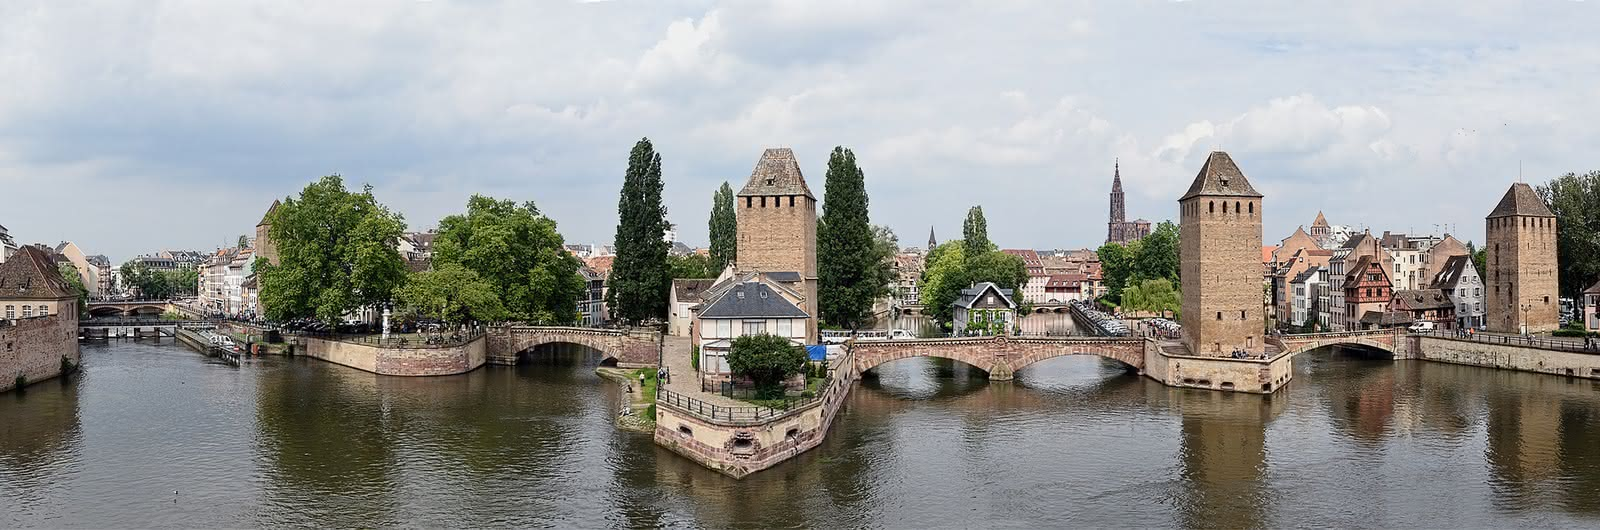 strasbourg city header